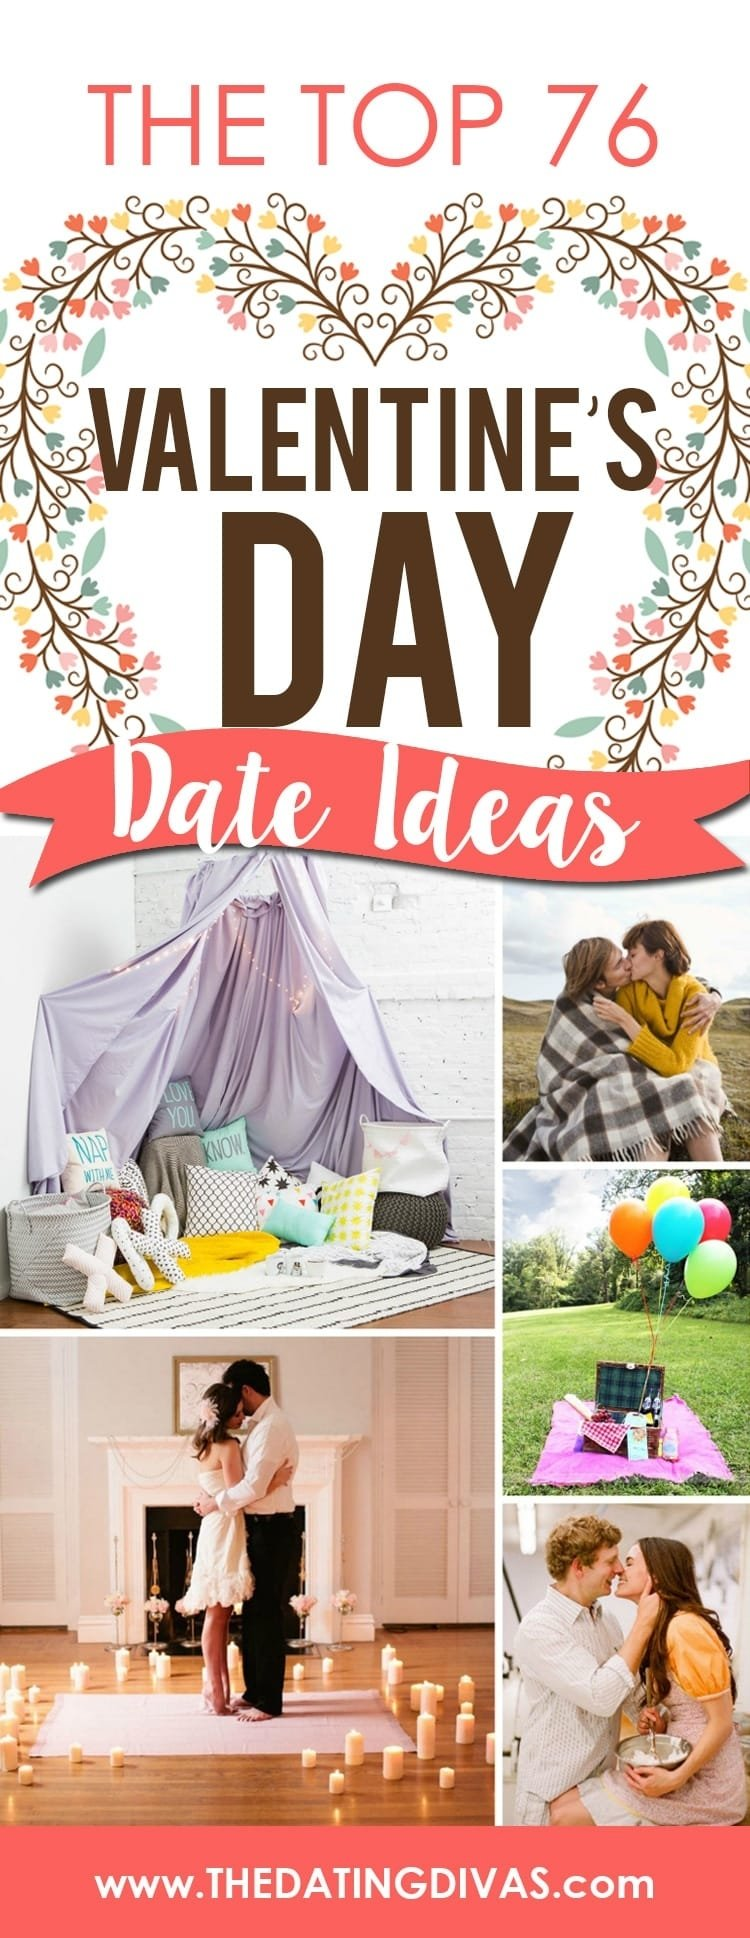 The dating divas valentines day ideas